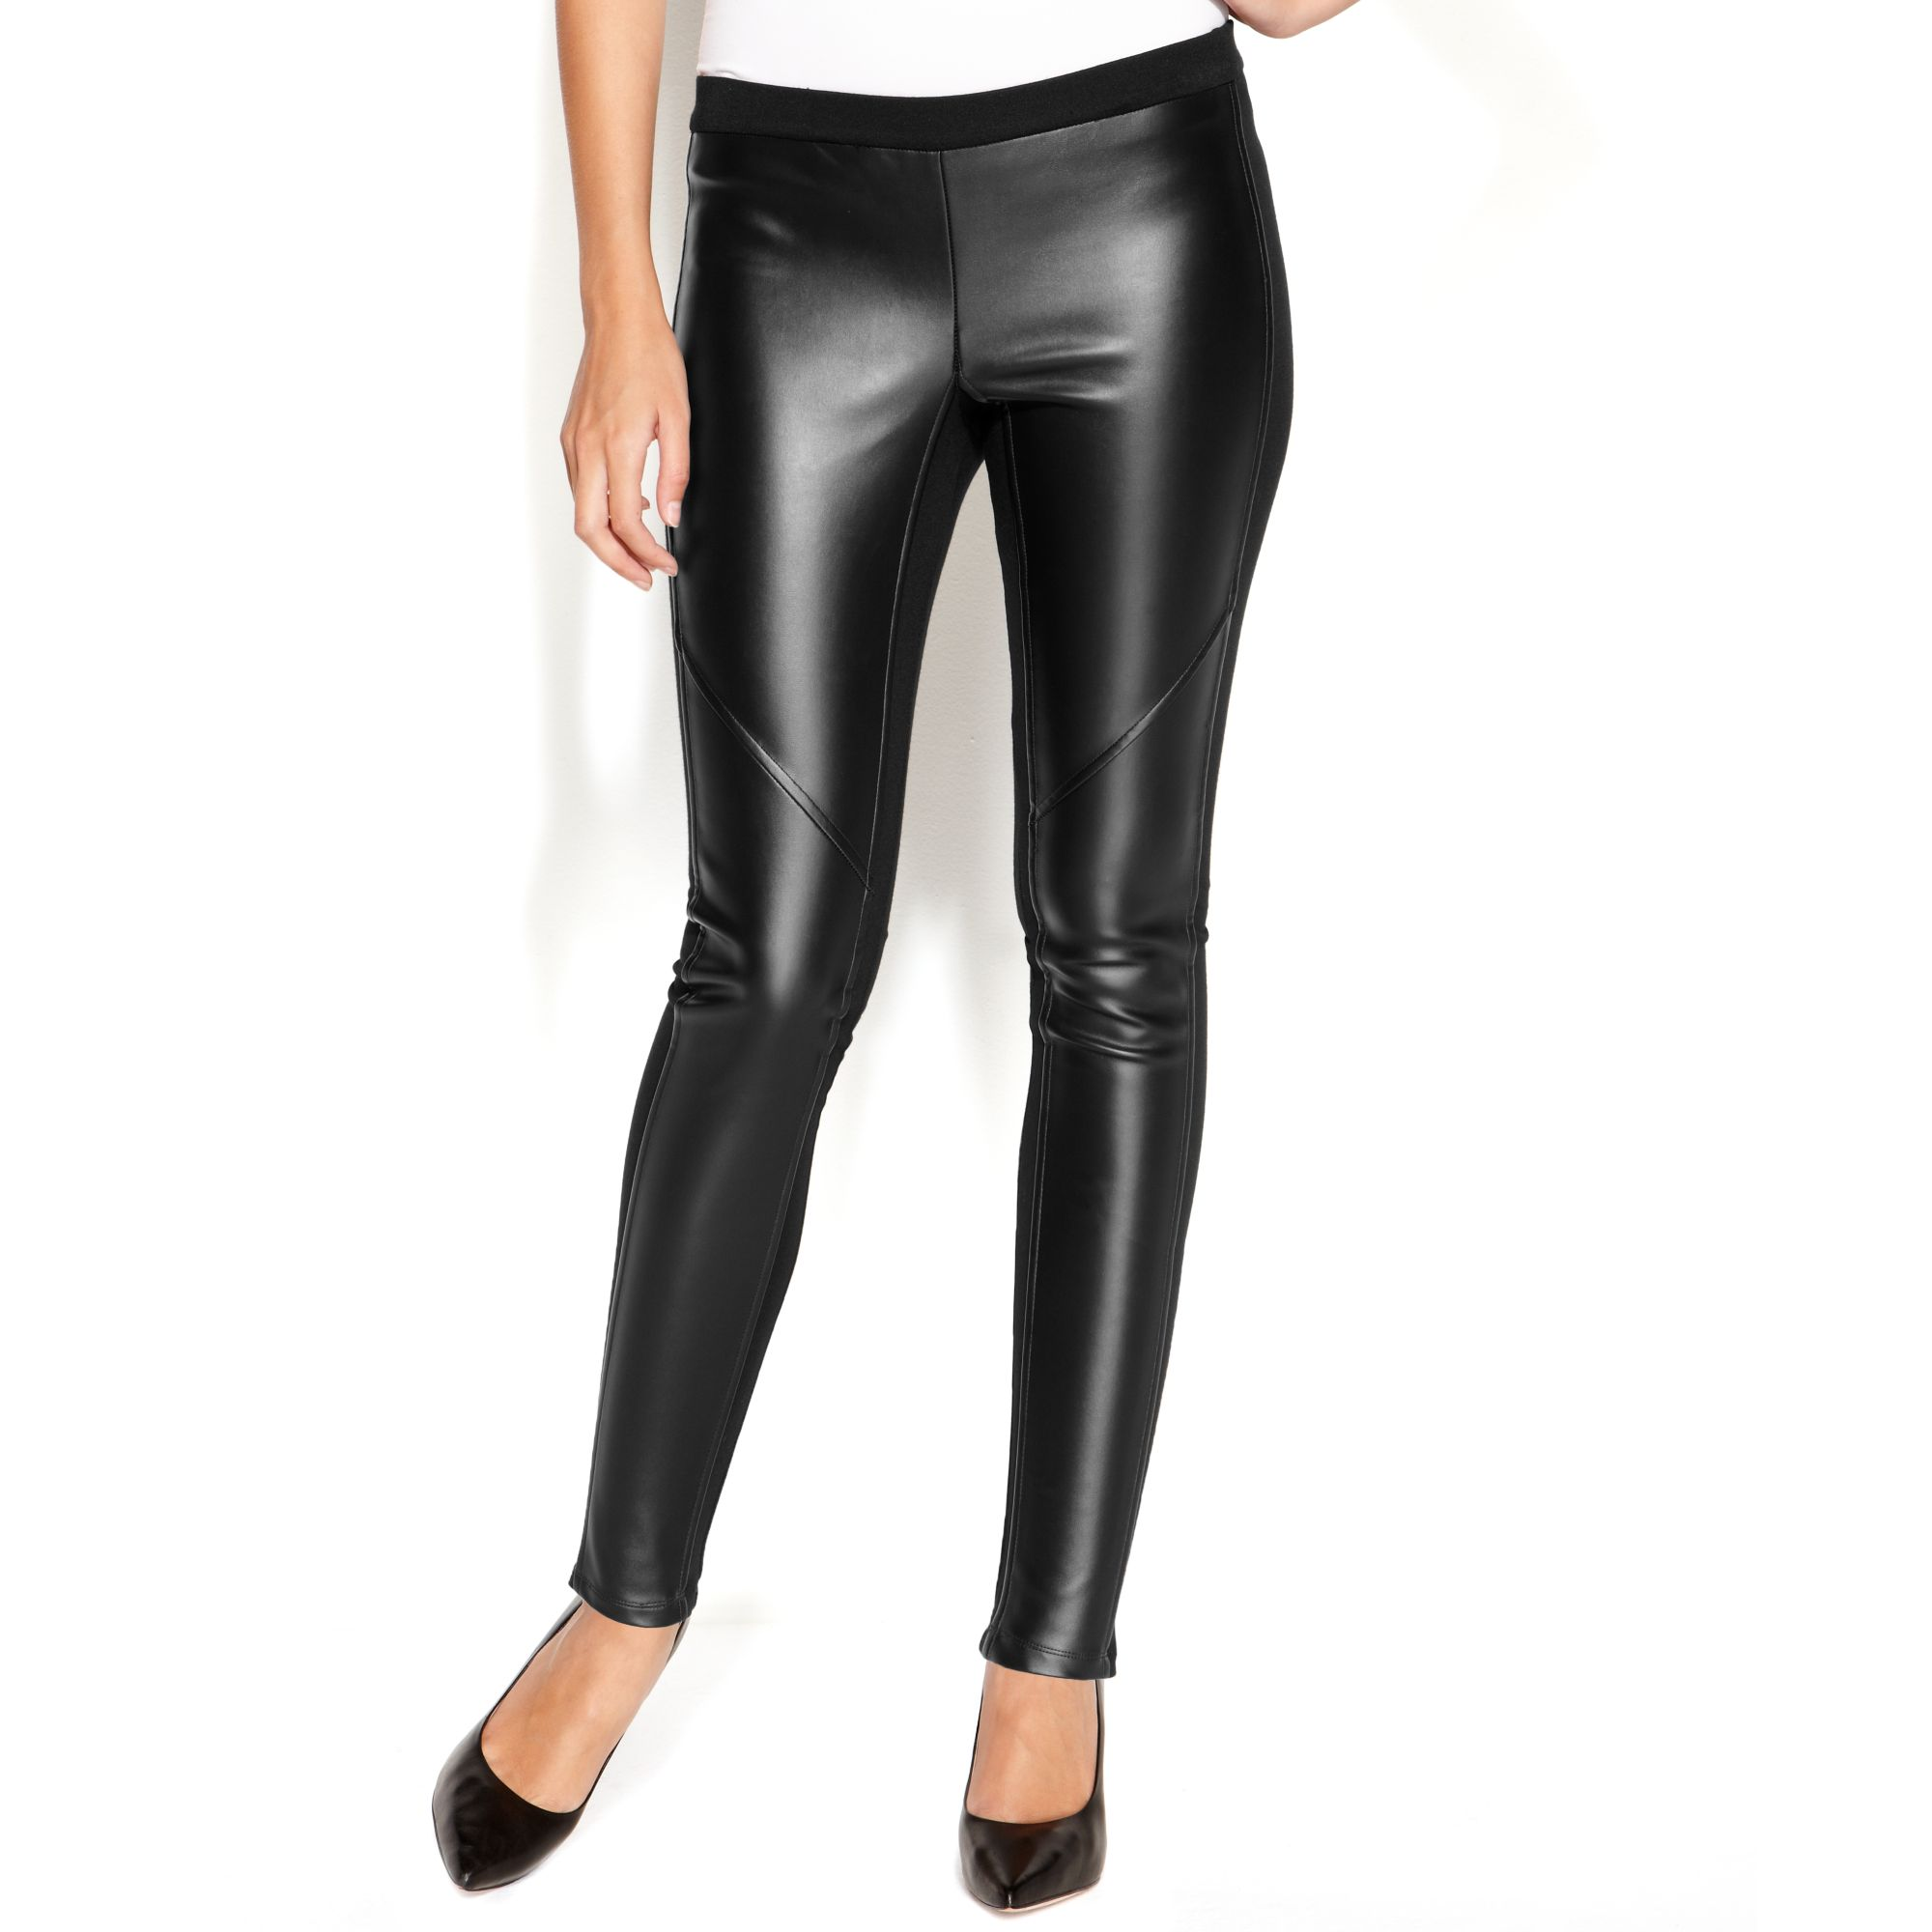 Black Faux Leather Leggings - Trendy Clothes